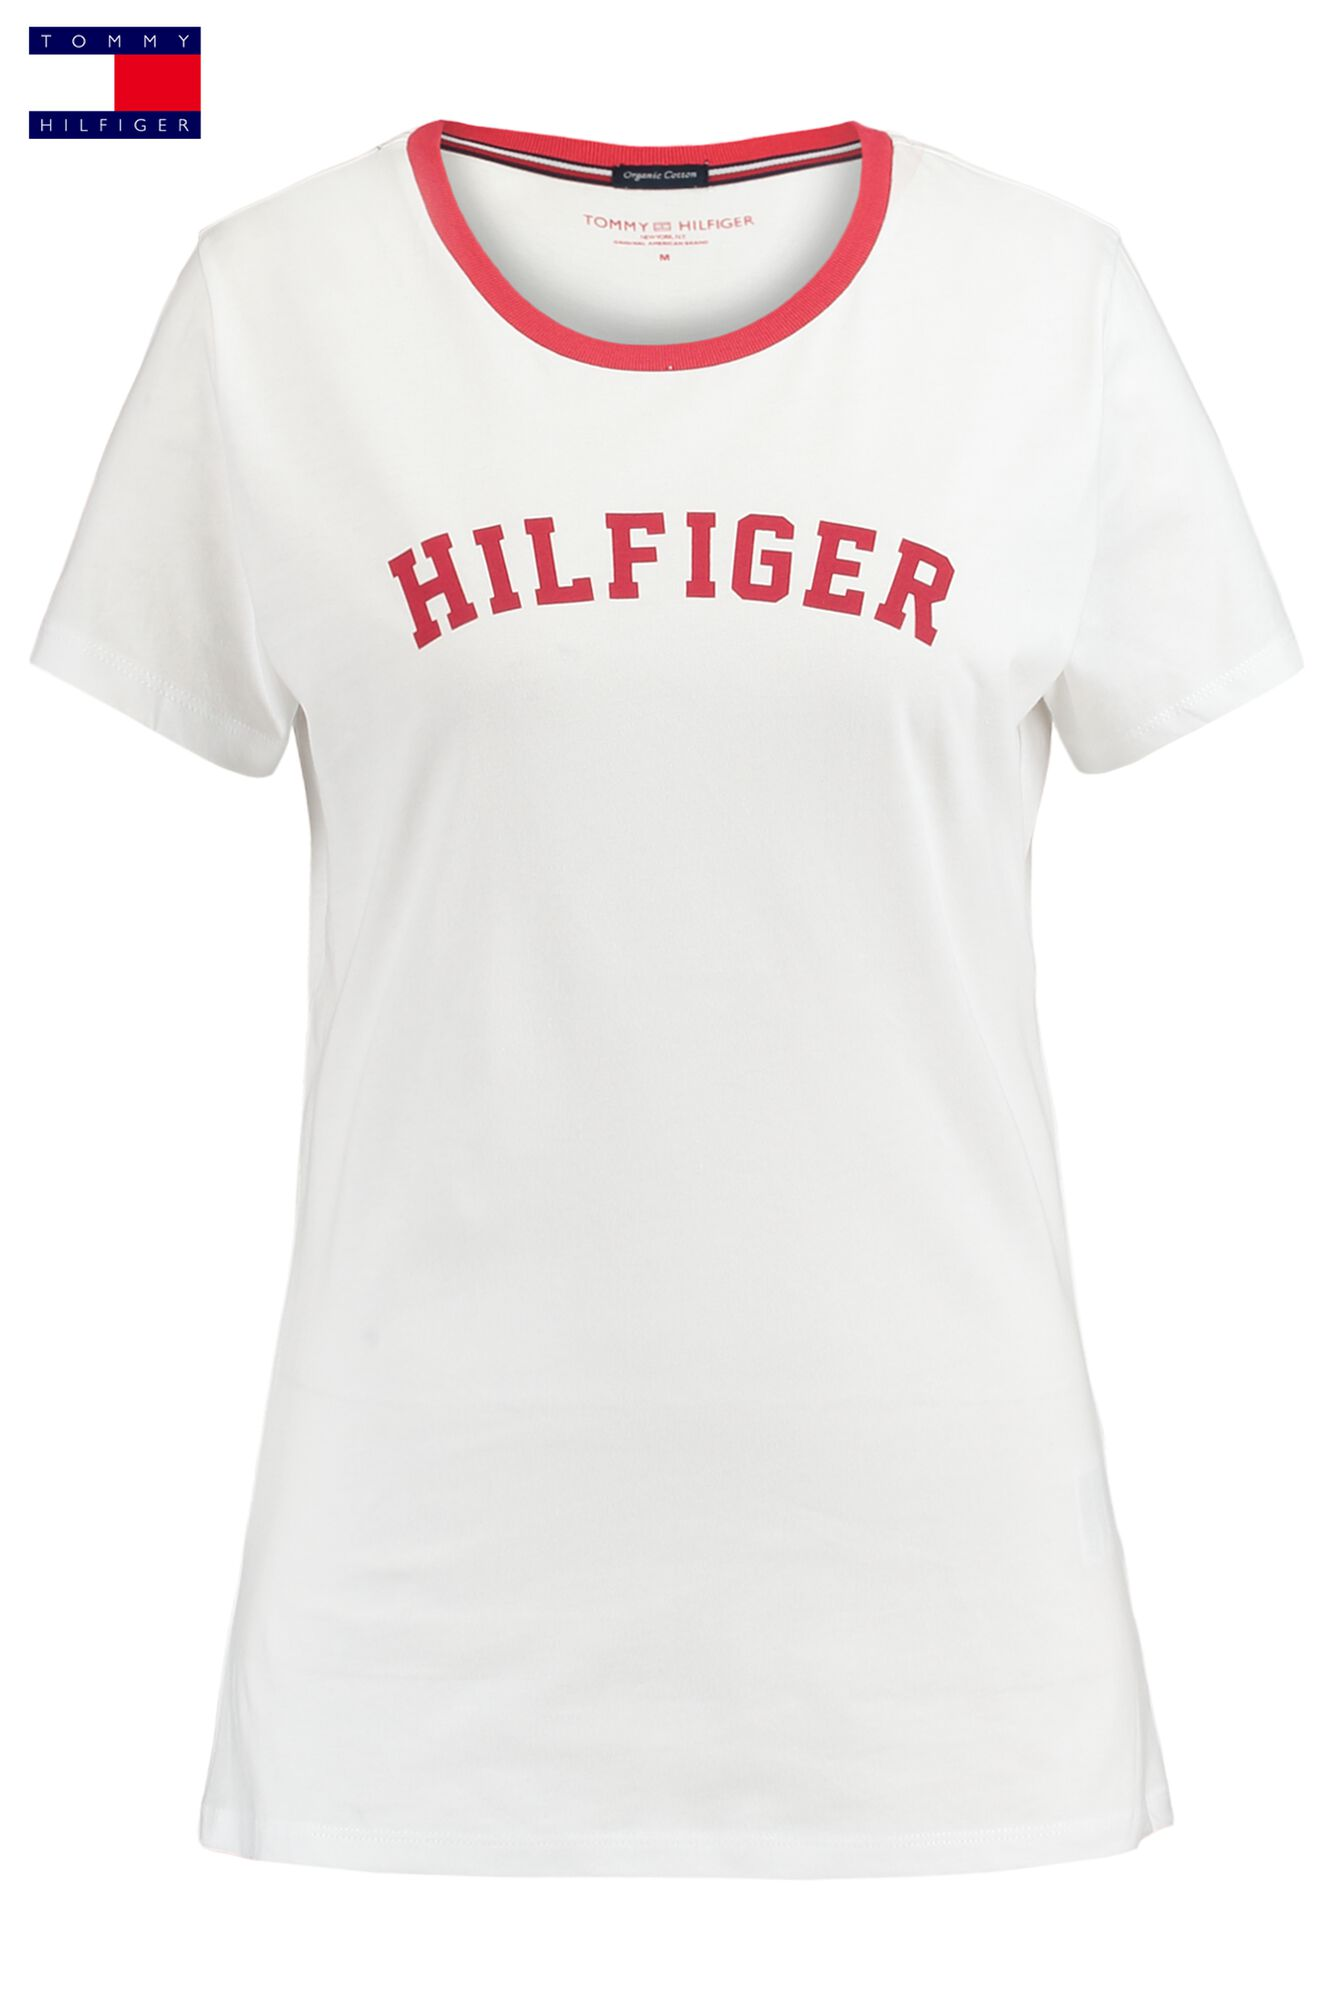 finest selection 0c741 1f7d3 Women T-shirt Tommy Hilfiger Red Buy Online